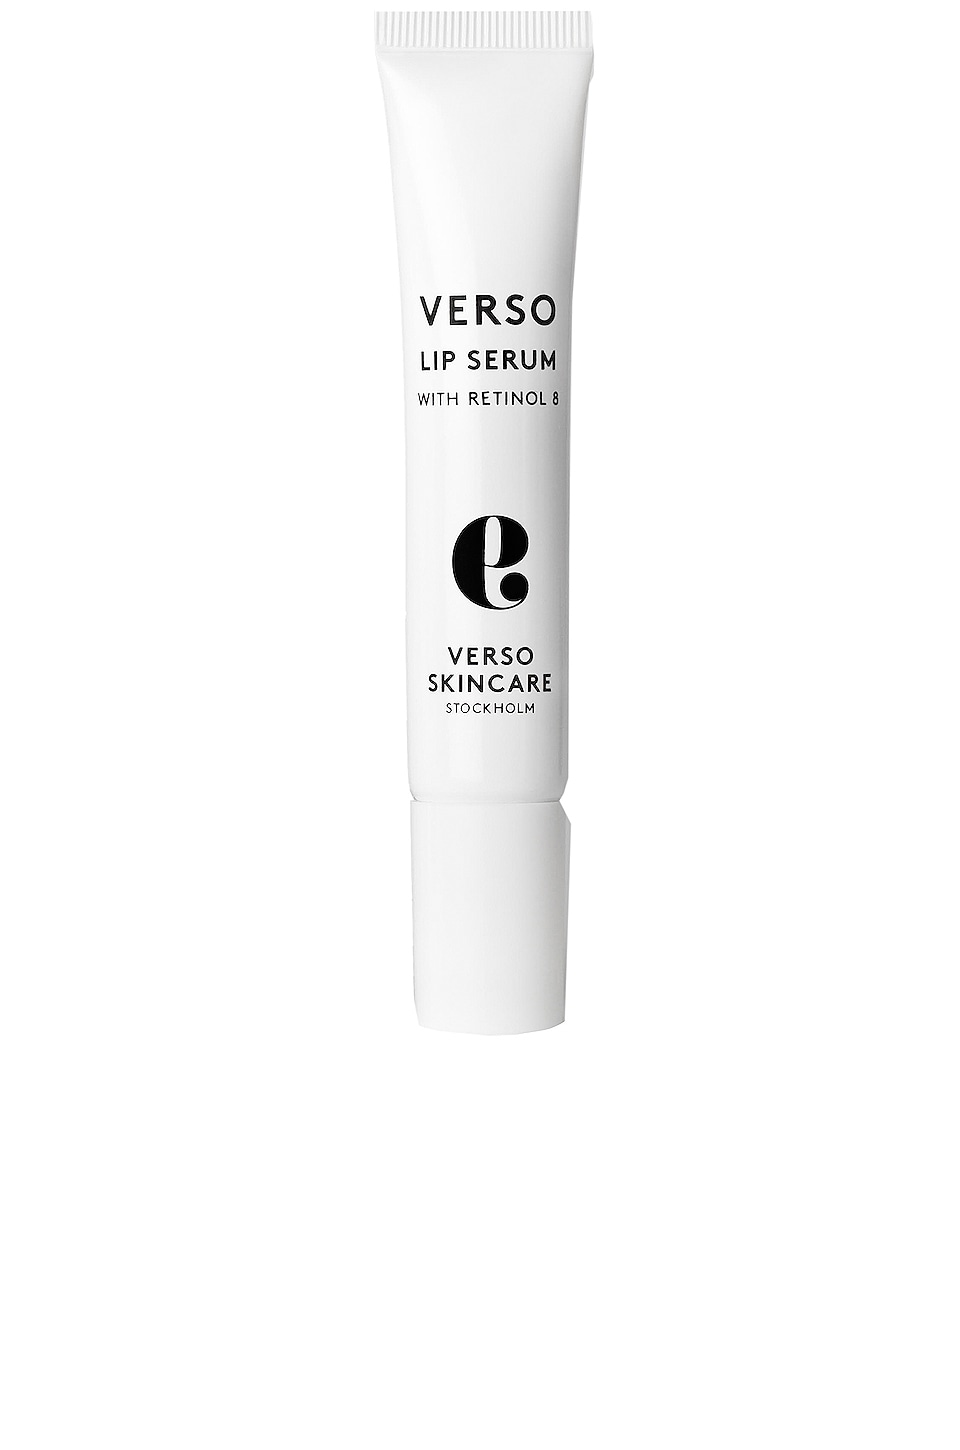 VERSO SKINCARE 9 Lip Serum